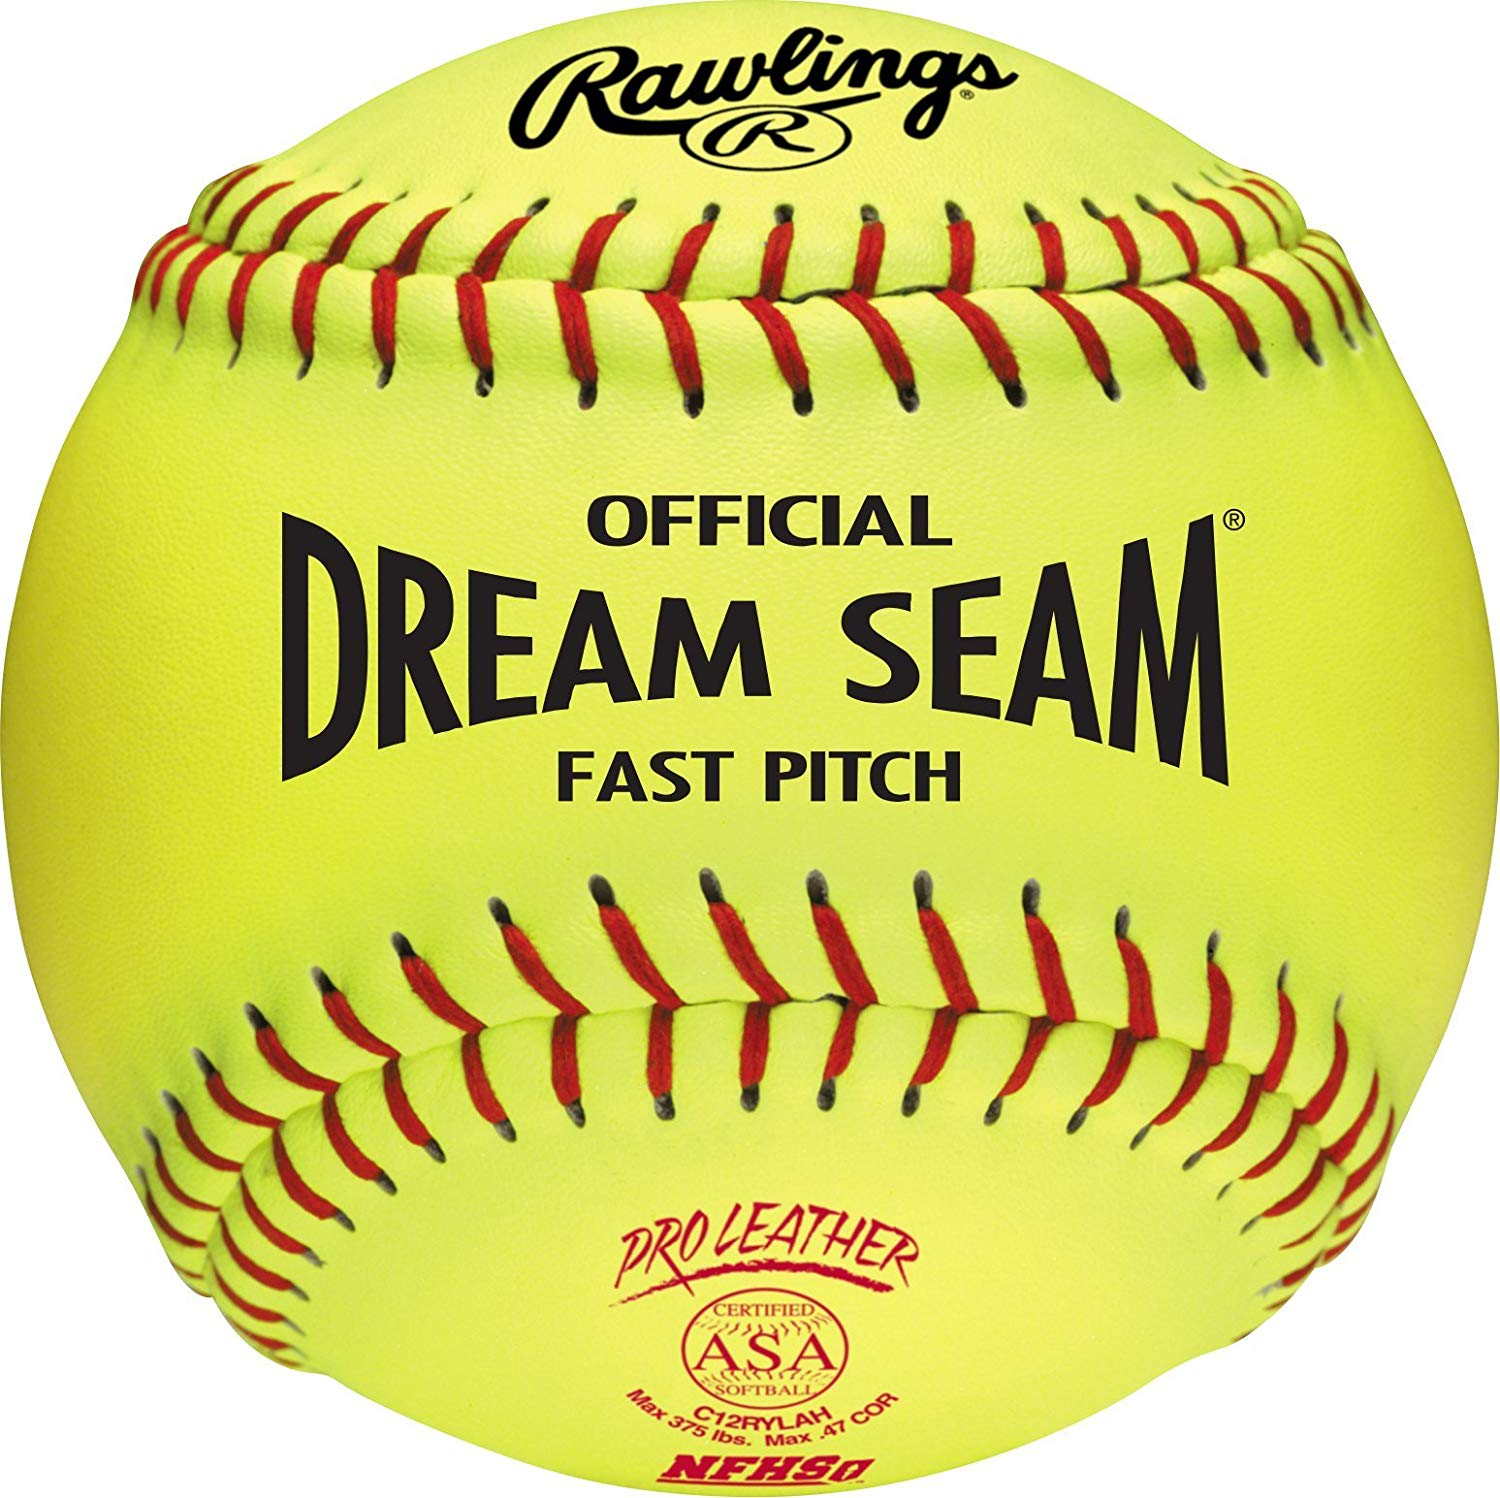 rawlings-c12rylah-12-inch-official-asa-dream-seam-fast-pitch-softballs-1-dozen C12RYLAH-DOZ Rawlings 083321439766 IDEAL FOR ASA AND HIGH SCHOOL LEVEL FASTPITCH SOFTBALL PLAYERS these